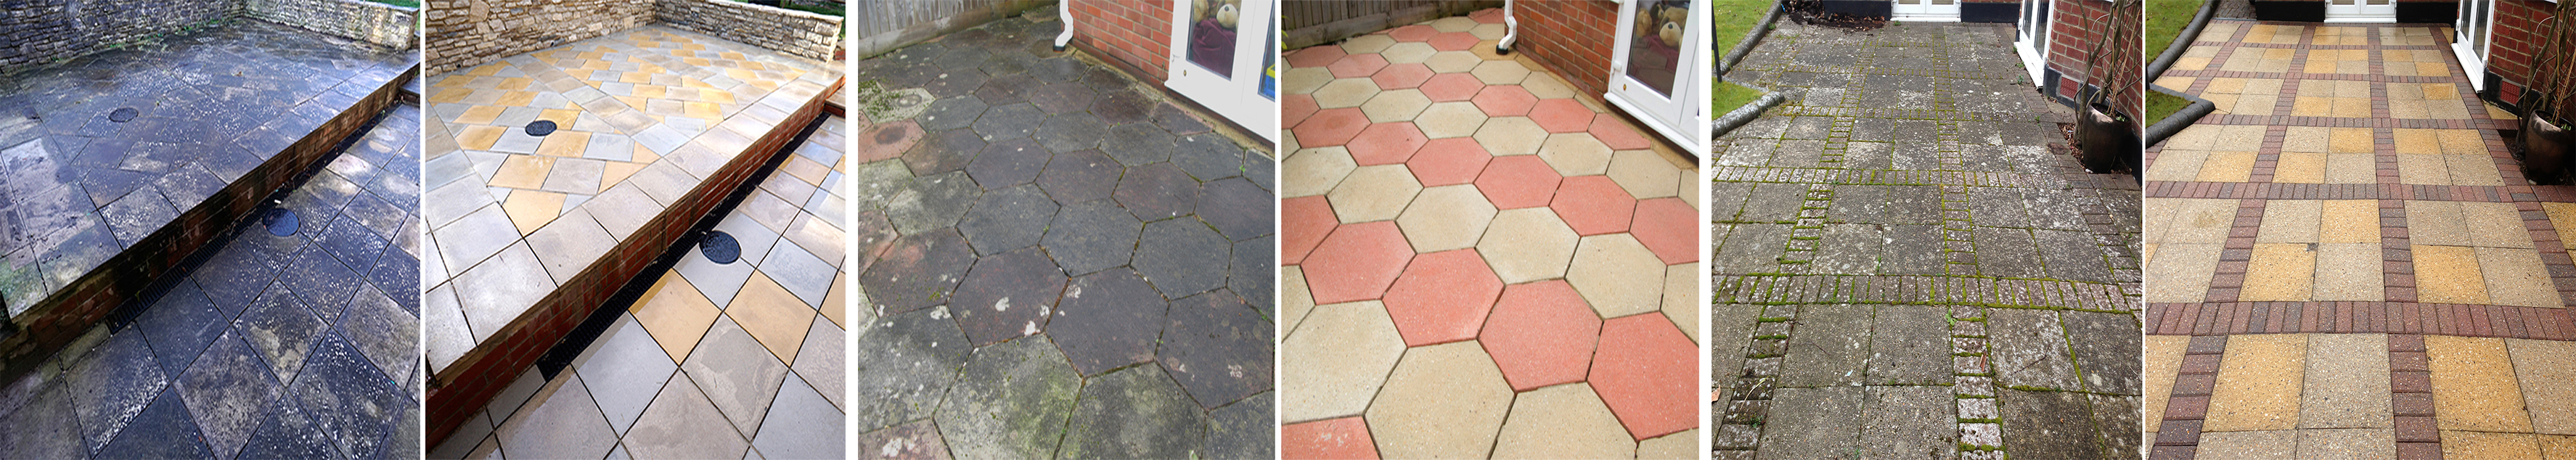 Patio Cleaning Services in Verwood, Dorset